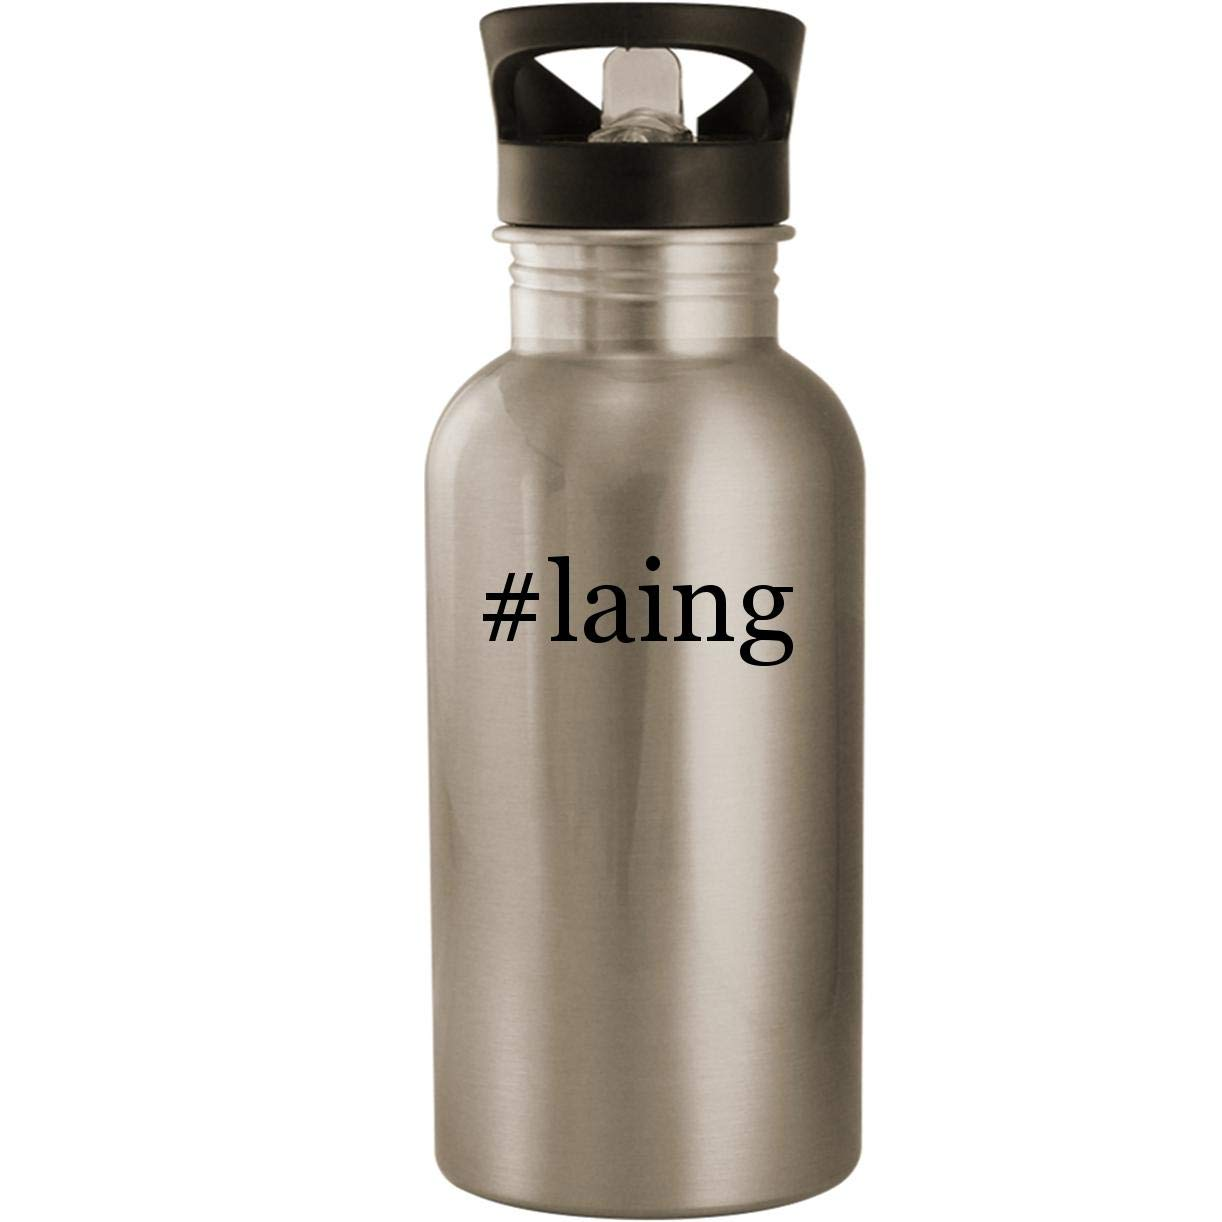 #laing - Stainless Steel 20oz Road Ready Water Bottle, Silver